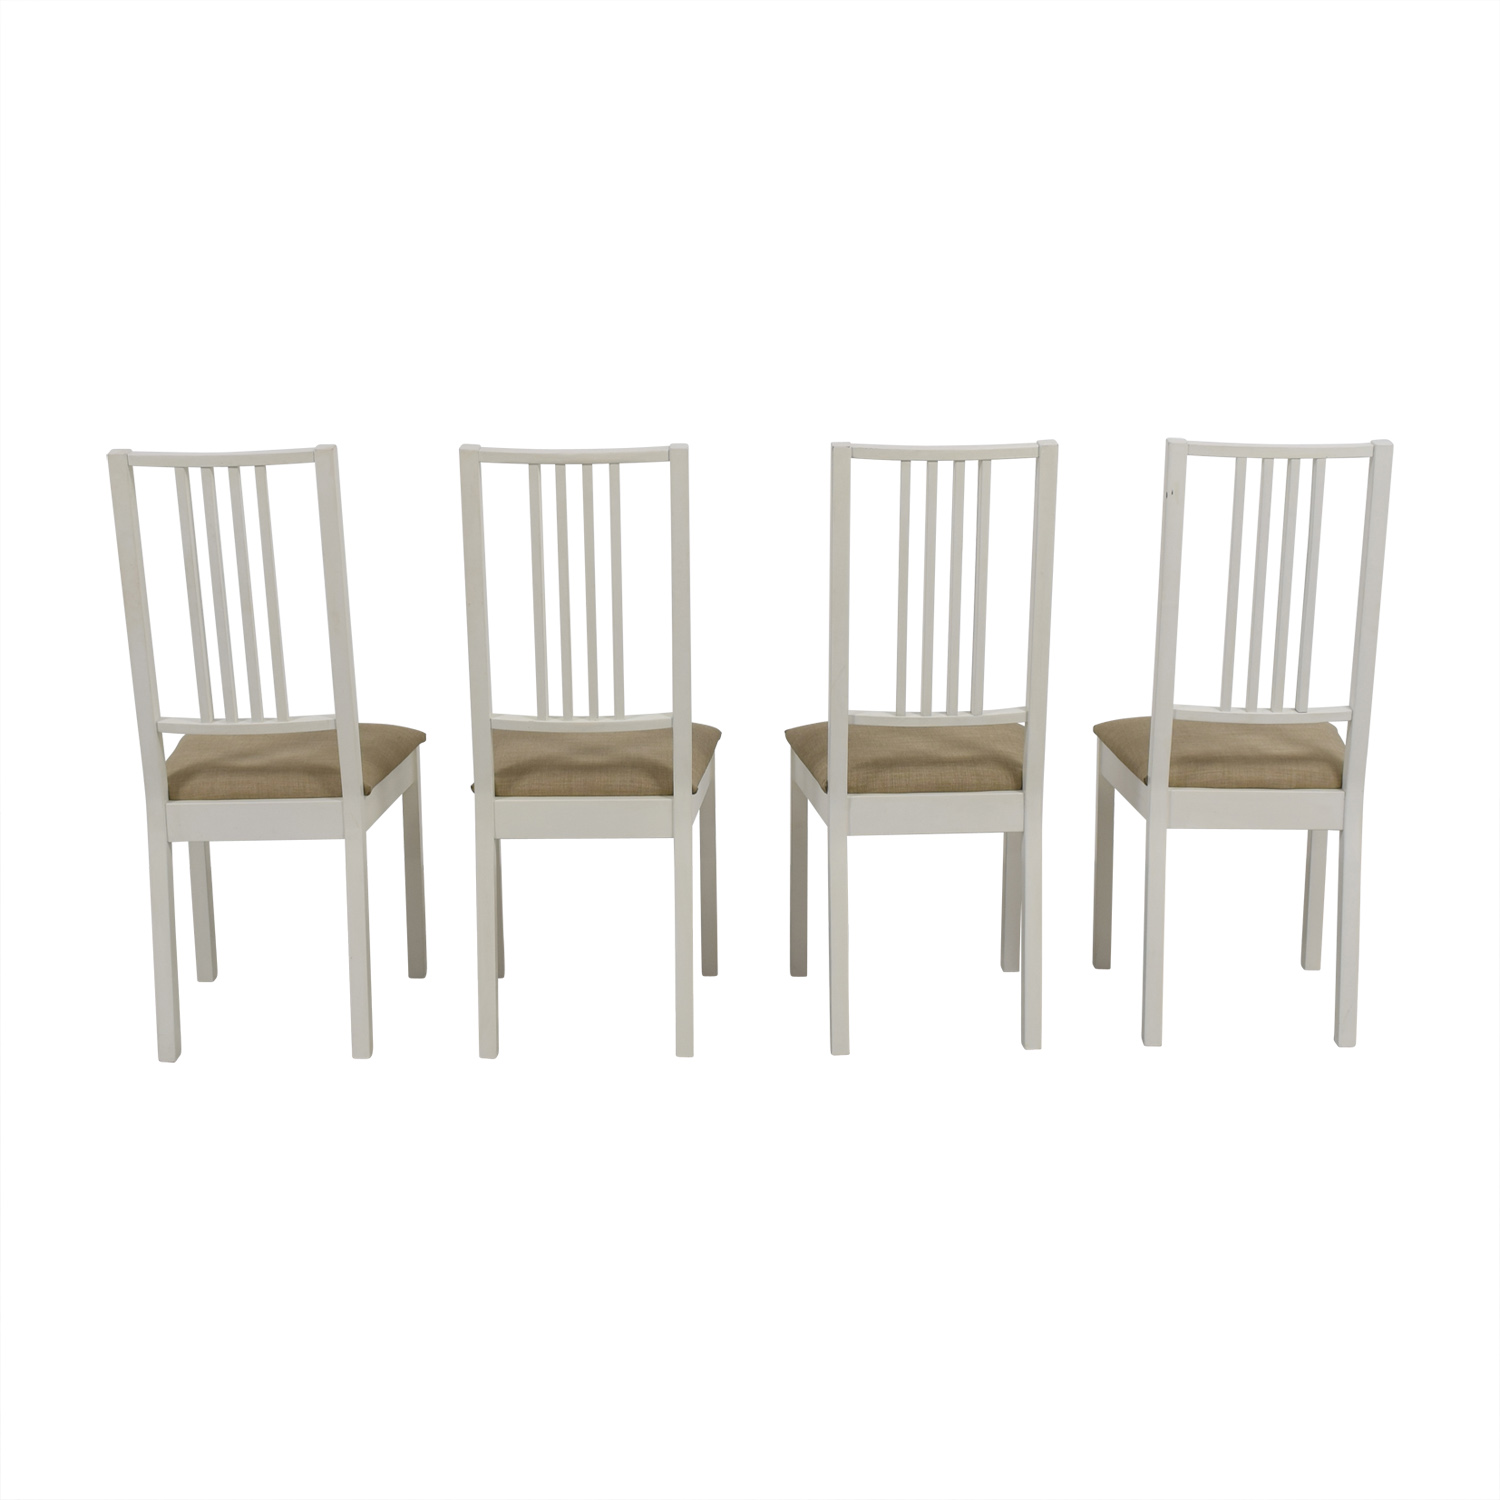 ... shop IKEA White with Tan Upholstered Dining Chairs IKEA ...  sc 1 st  Furnishare & 82% OFF - IKEA IKEA White with Tan Upholstered Dining Chairs / Chairs